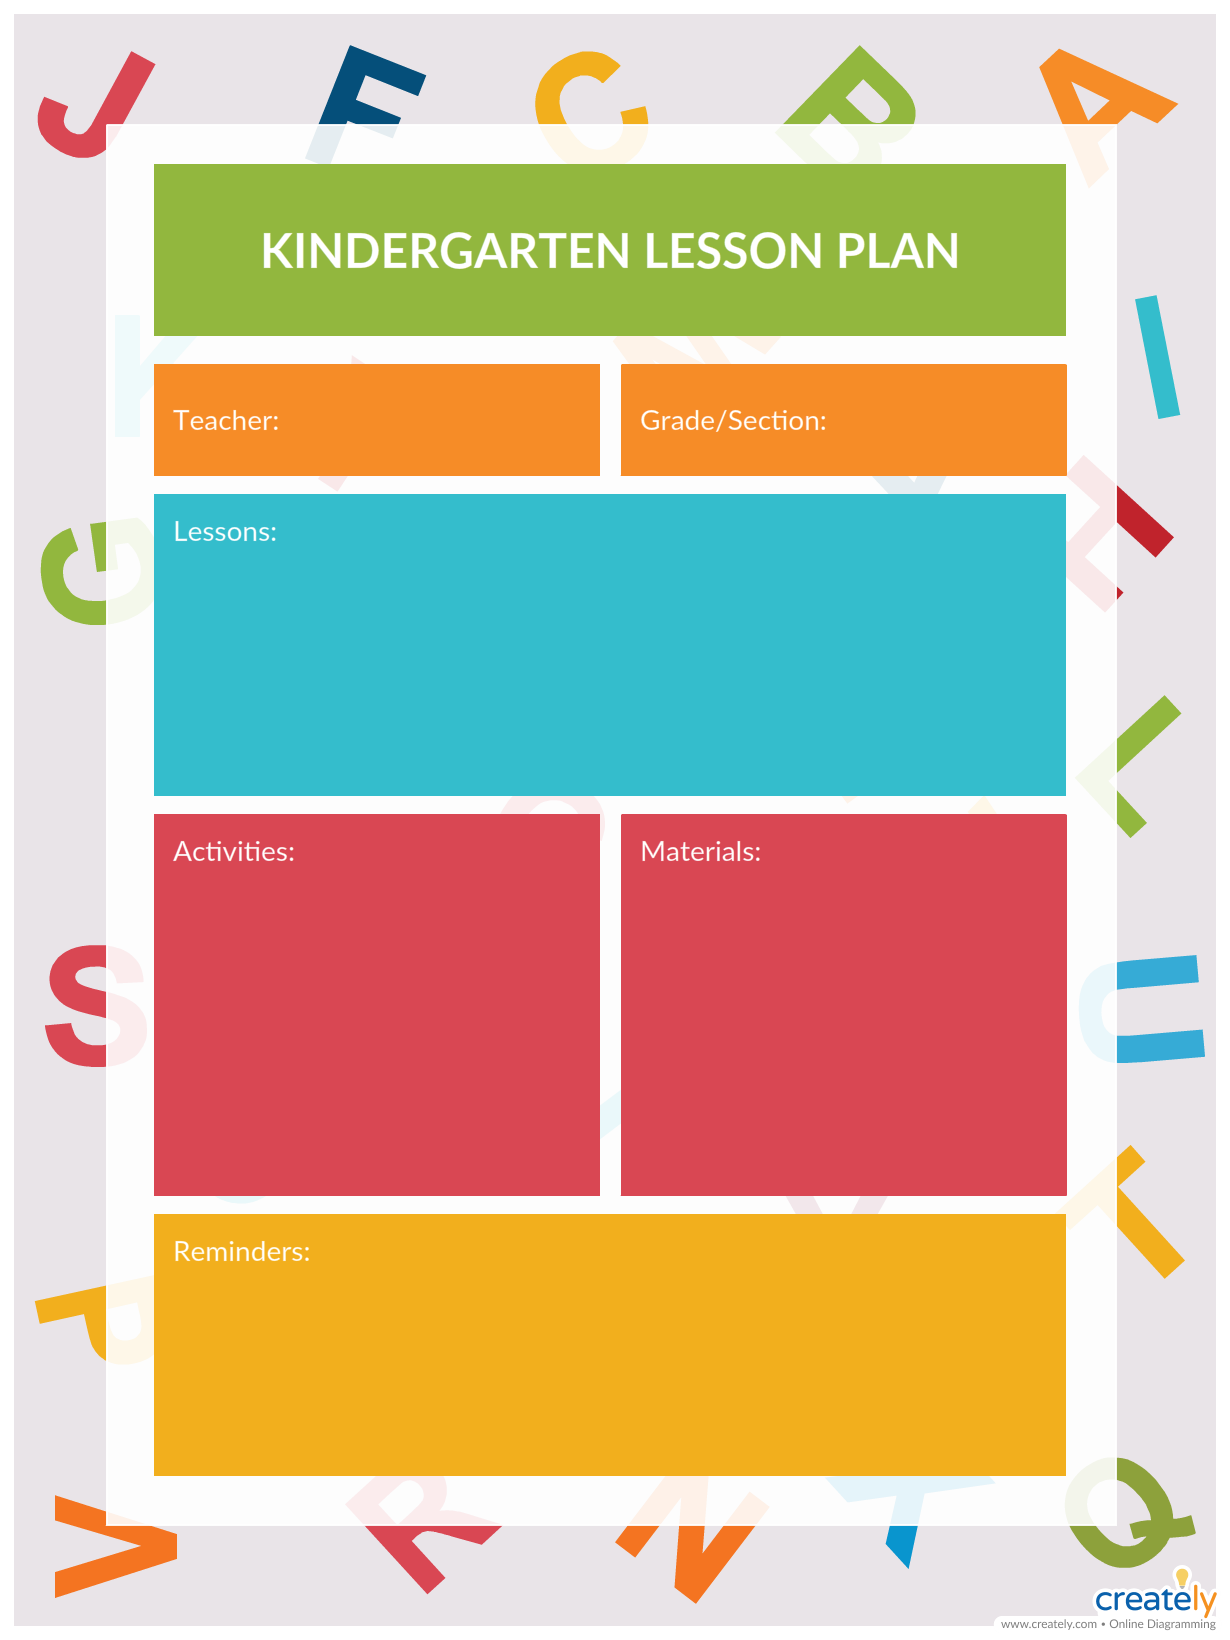 hight resolution of give your class a head start on essential elementary school skills with this kindergarten lesson plan template use creately s easy online diagram editor to